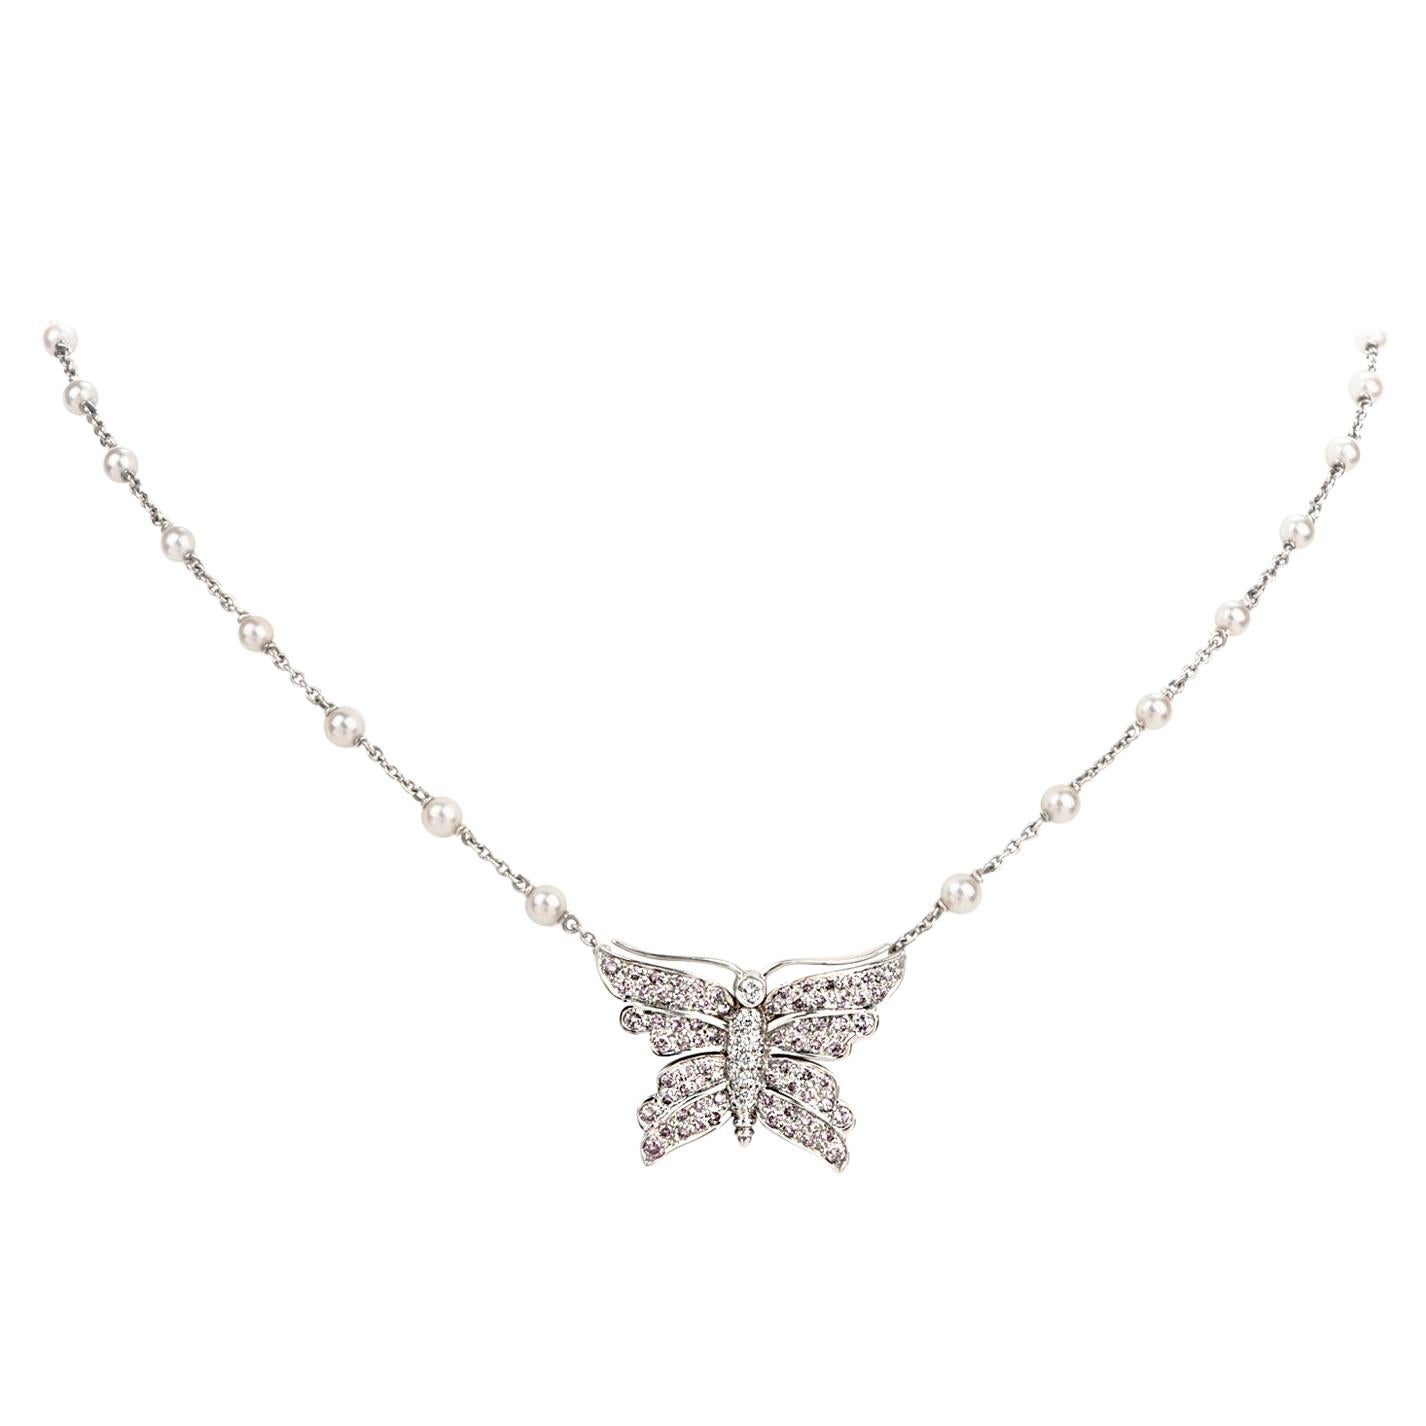 Tiffany & Co. Pink Diamond and Akoya Pearl Butterfly Pendant Necklace